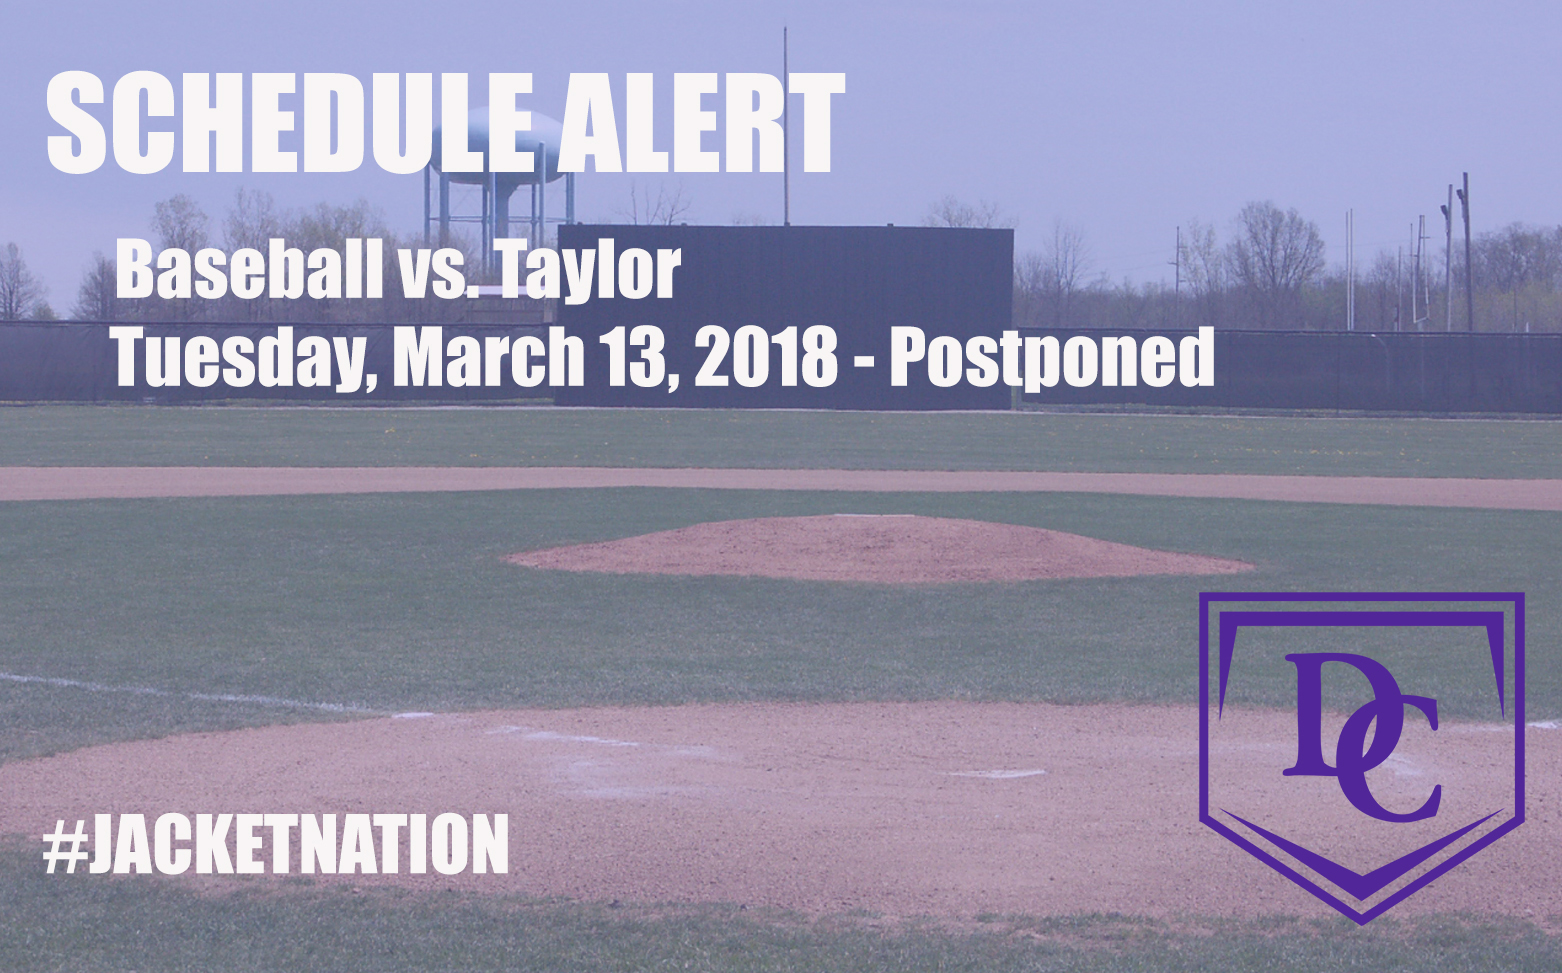 Baseball Doubleheader at Taylor Postponed